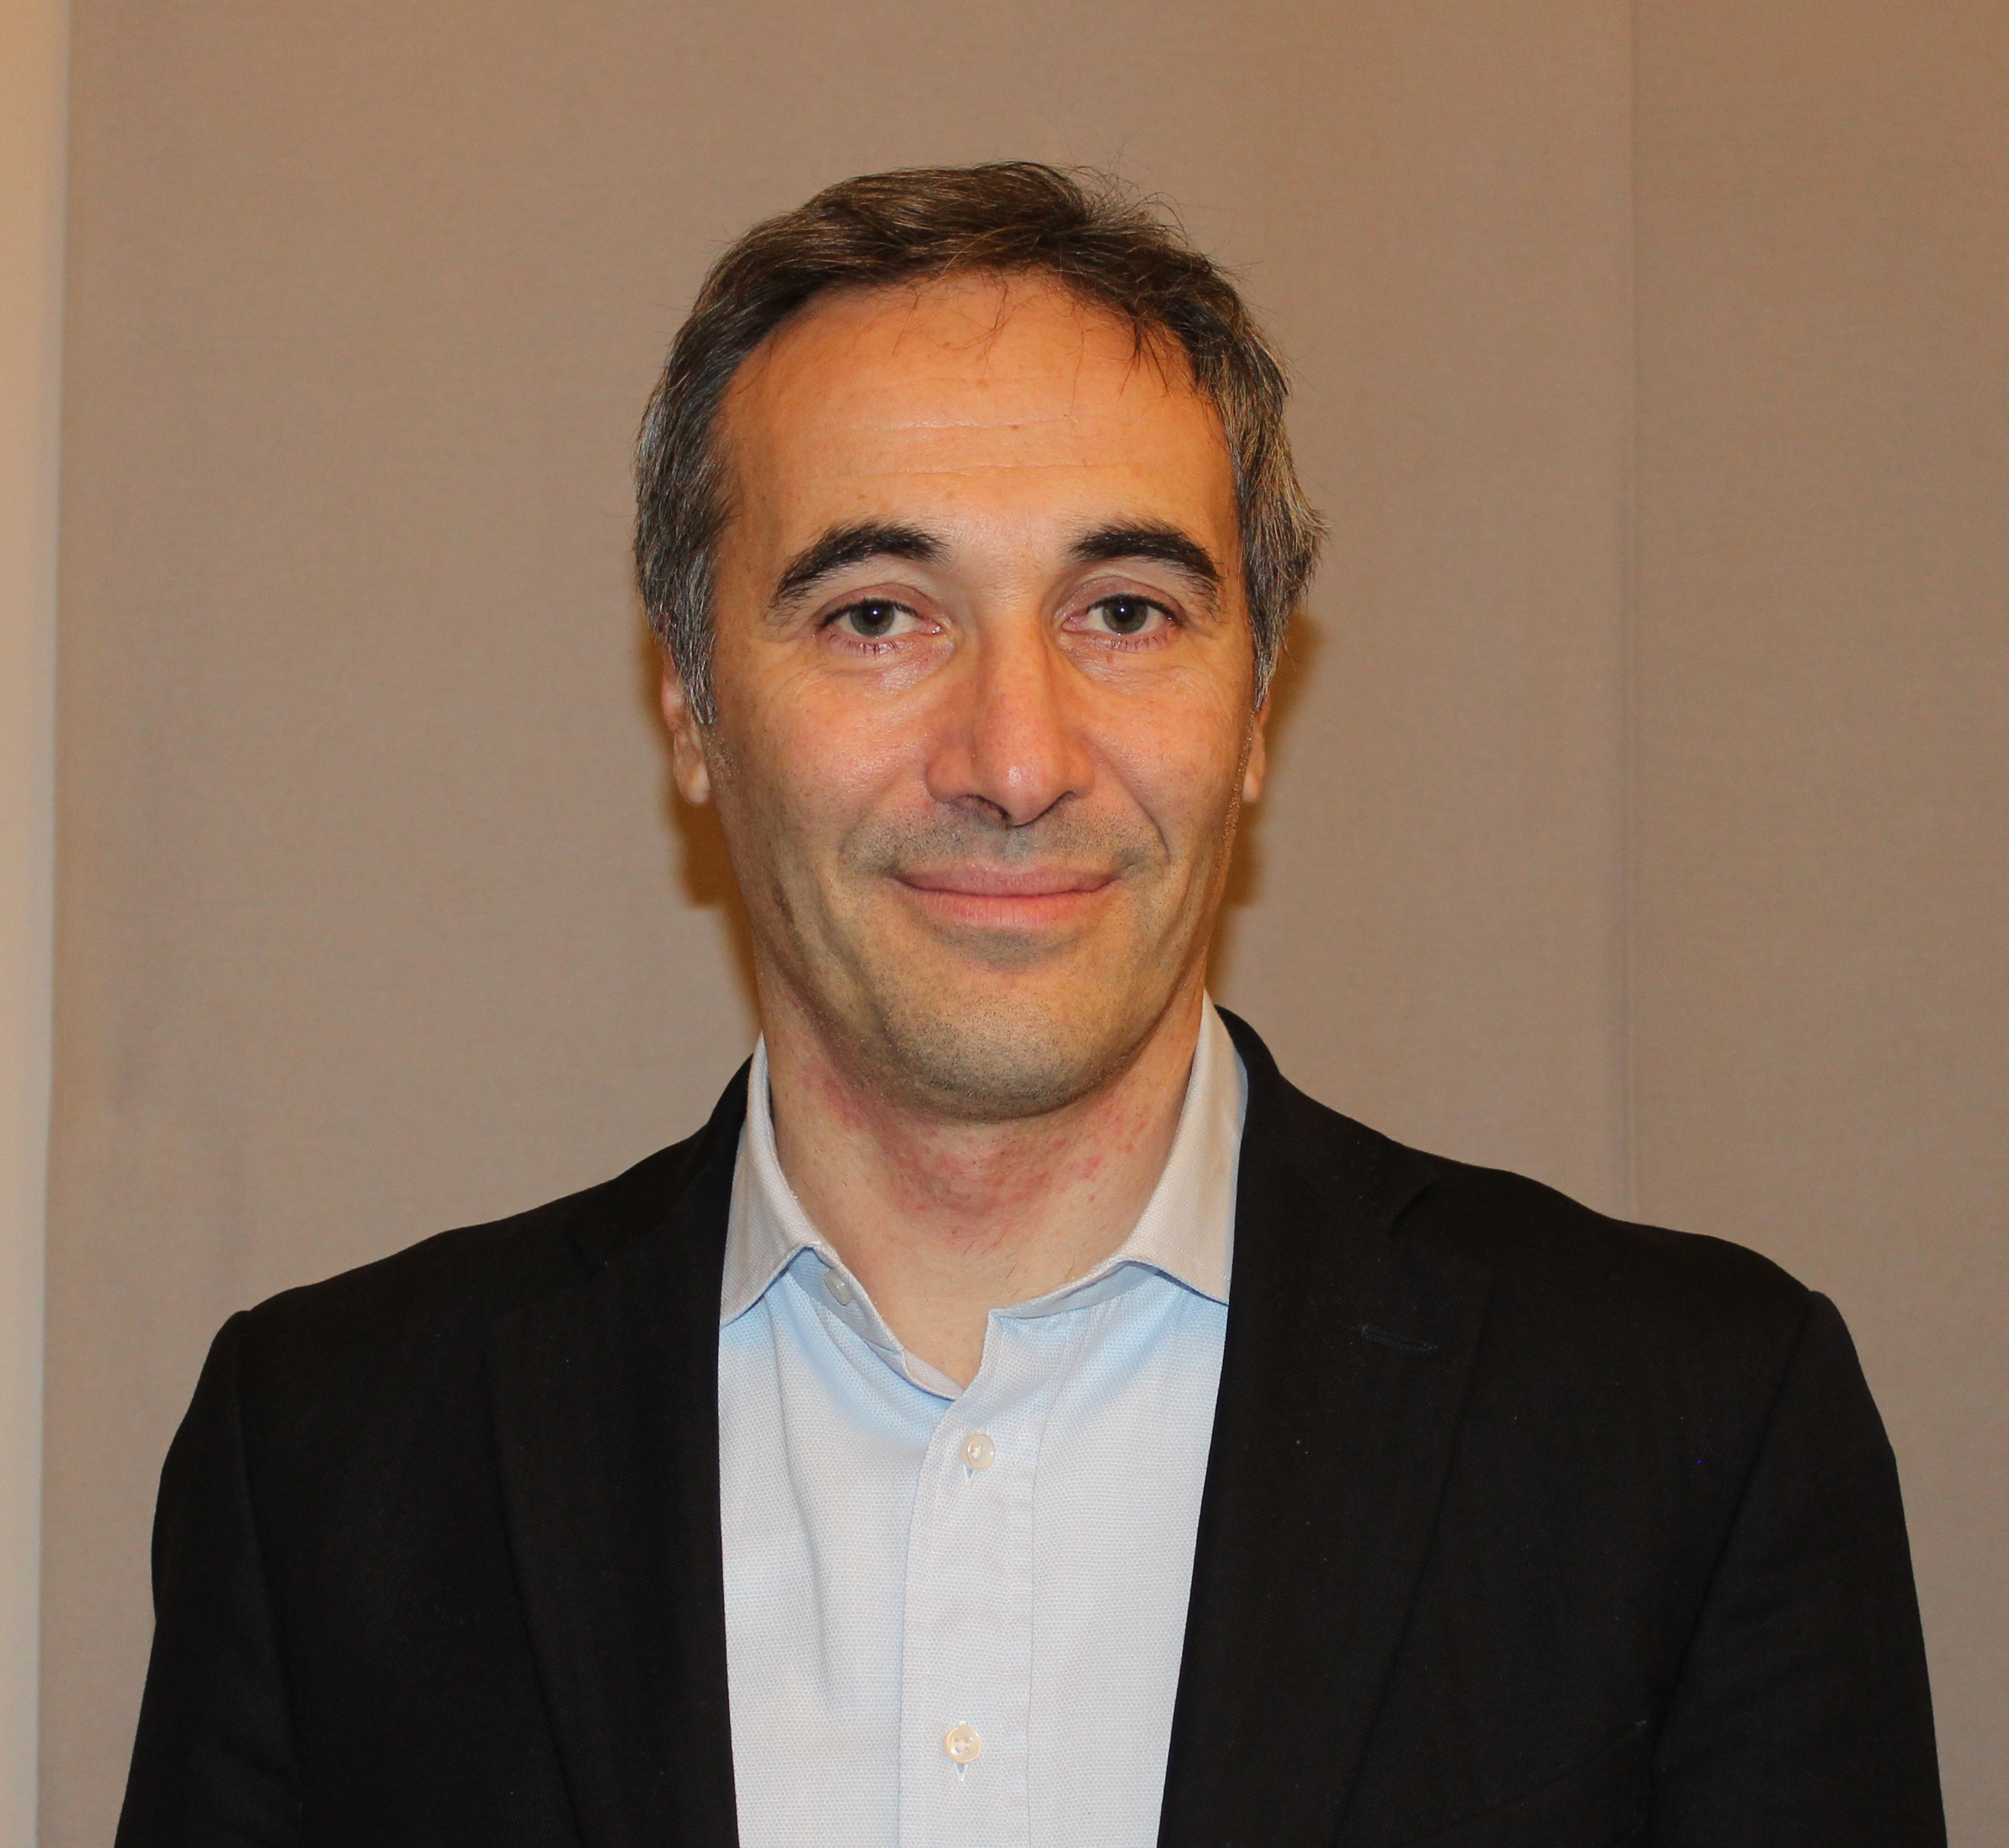 Alessandro Magrini, Human Resources Director presso Fujitsu Technology Solutions